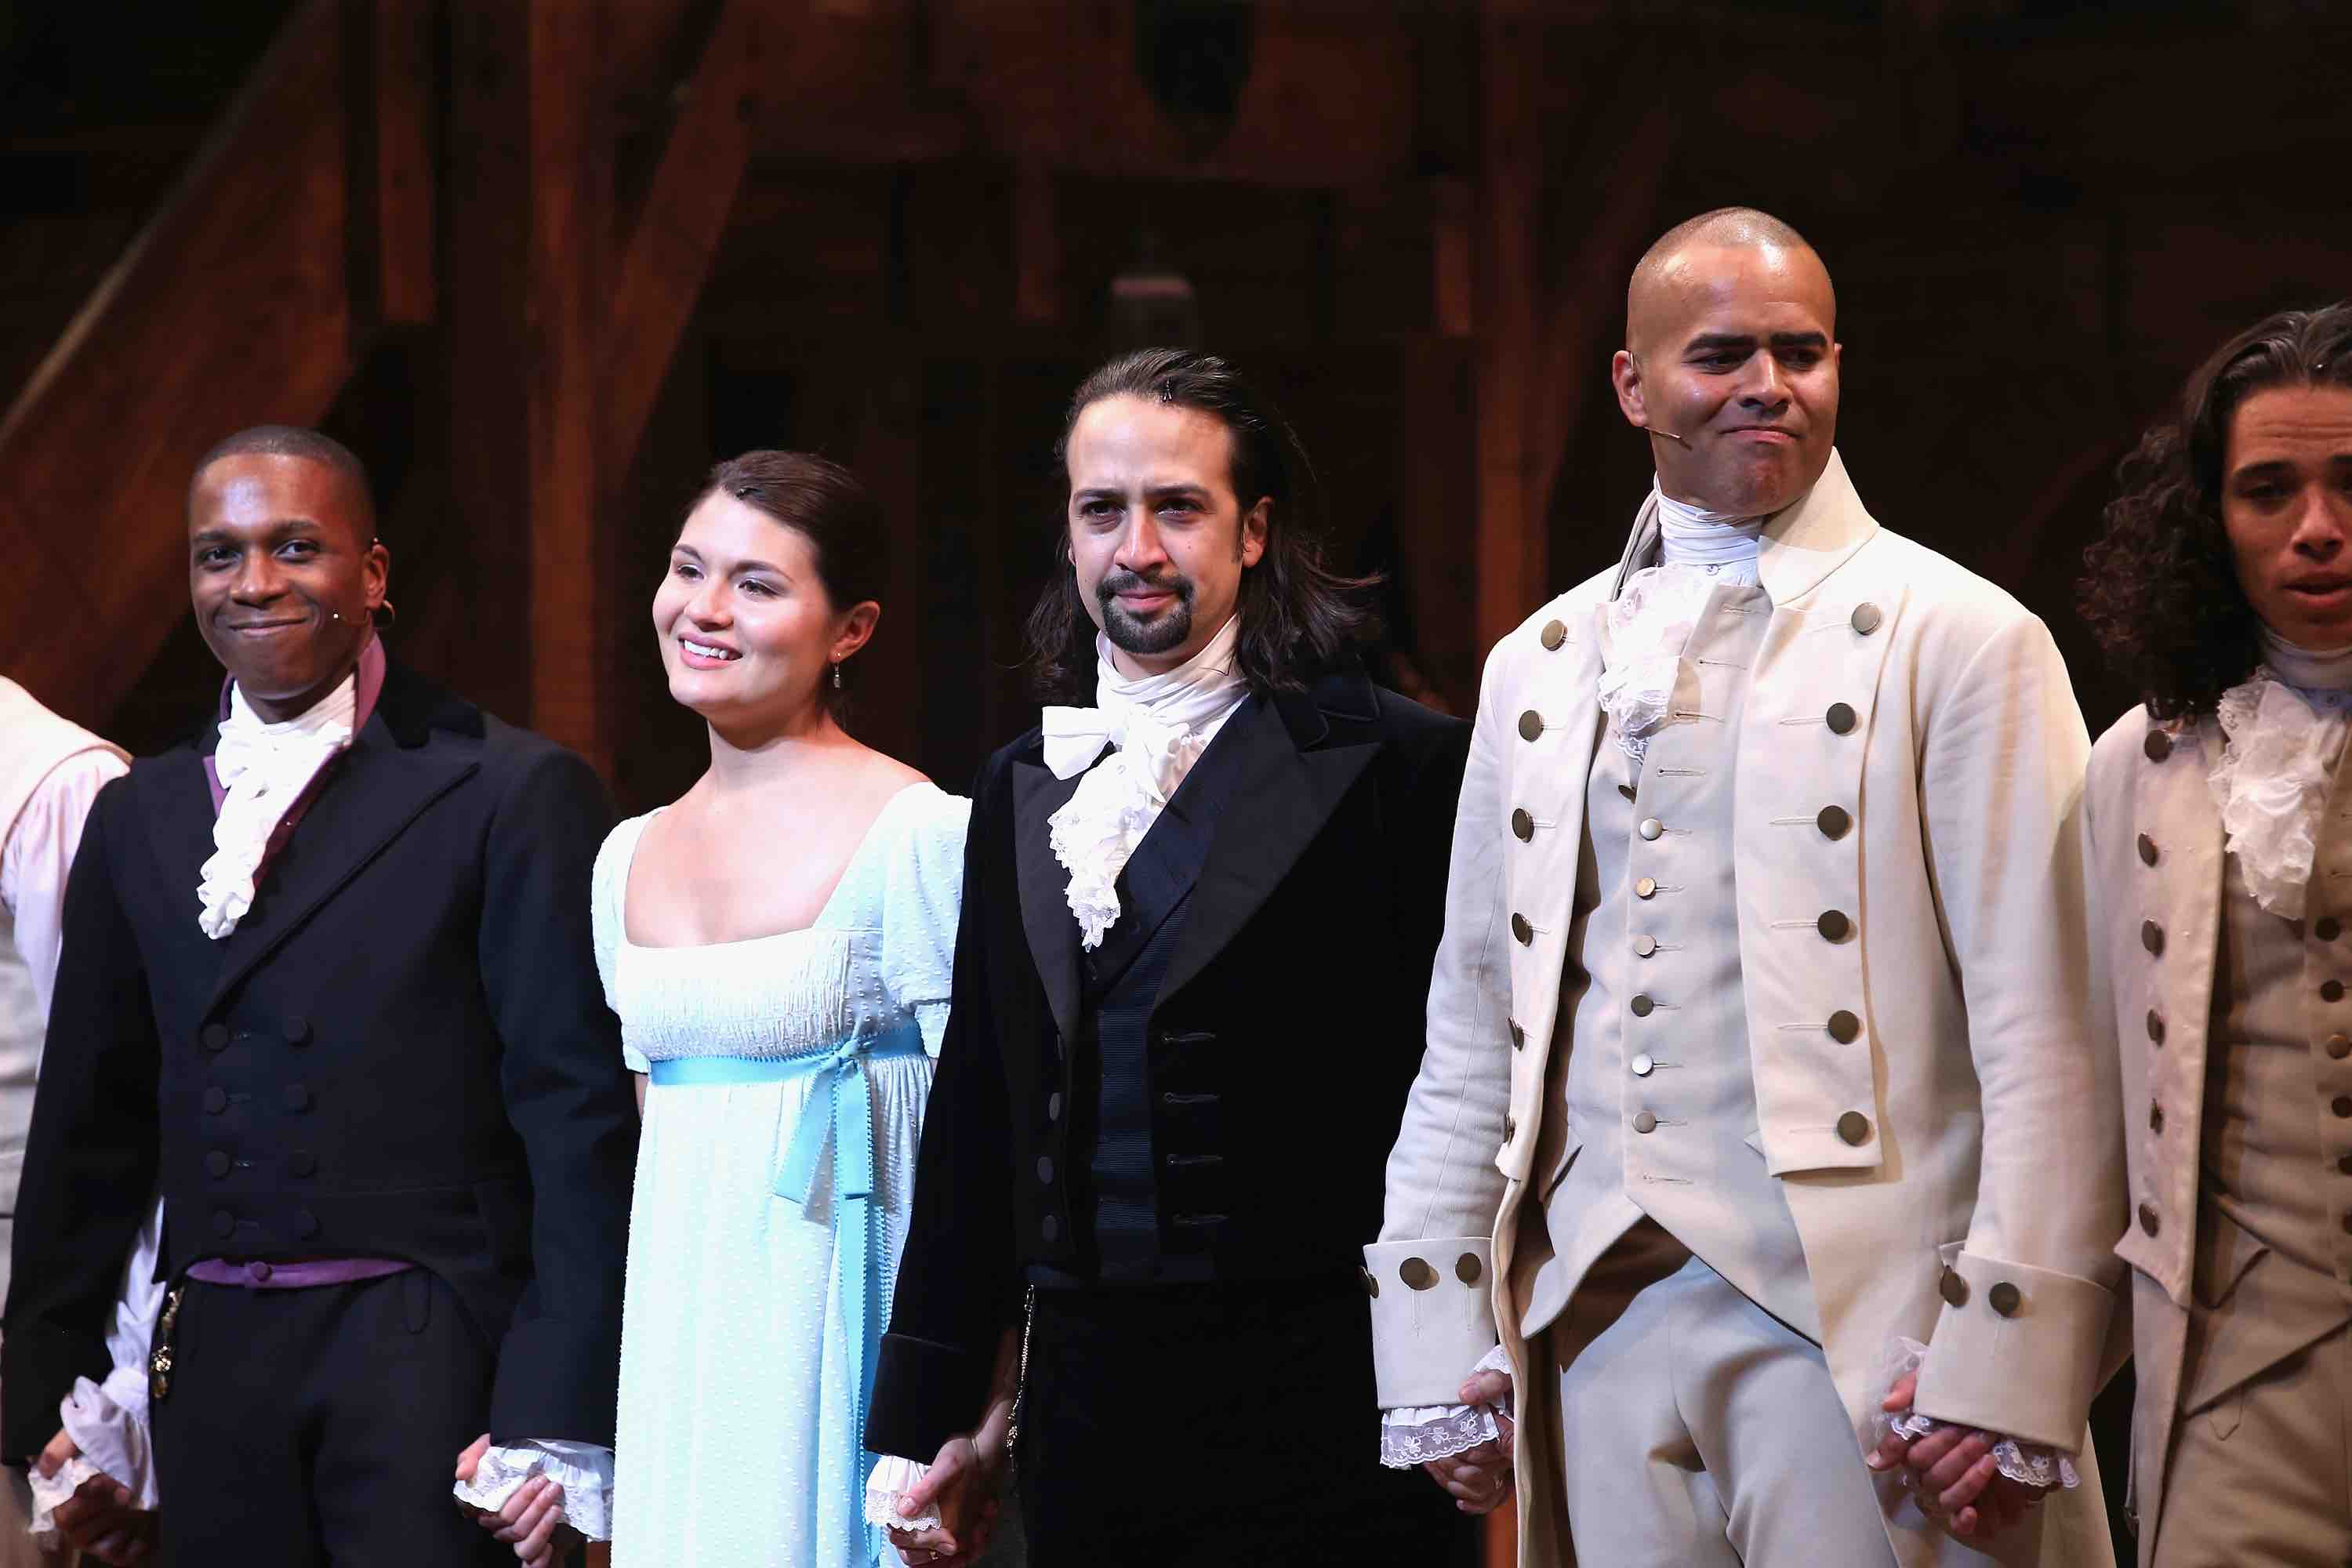 'Hamilton' Movie With Original Broadway Cast Is Finally Coming to Theaters